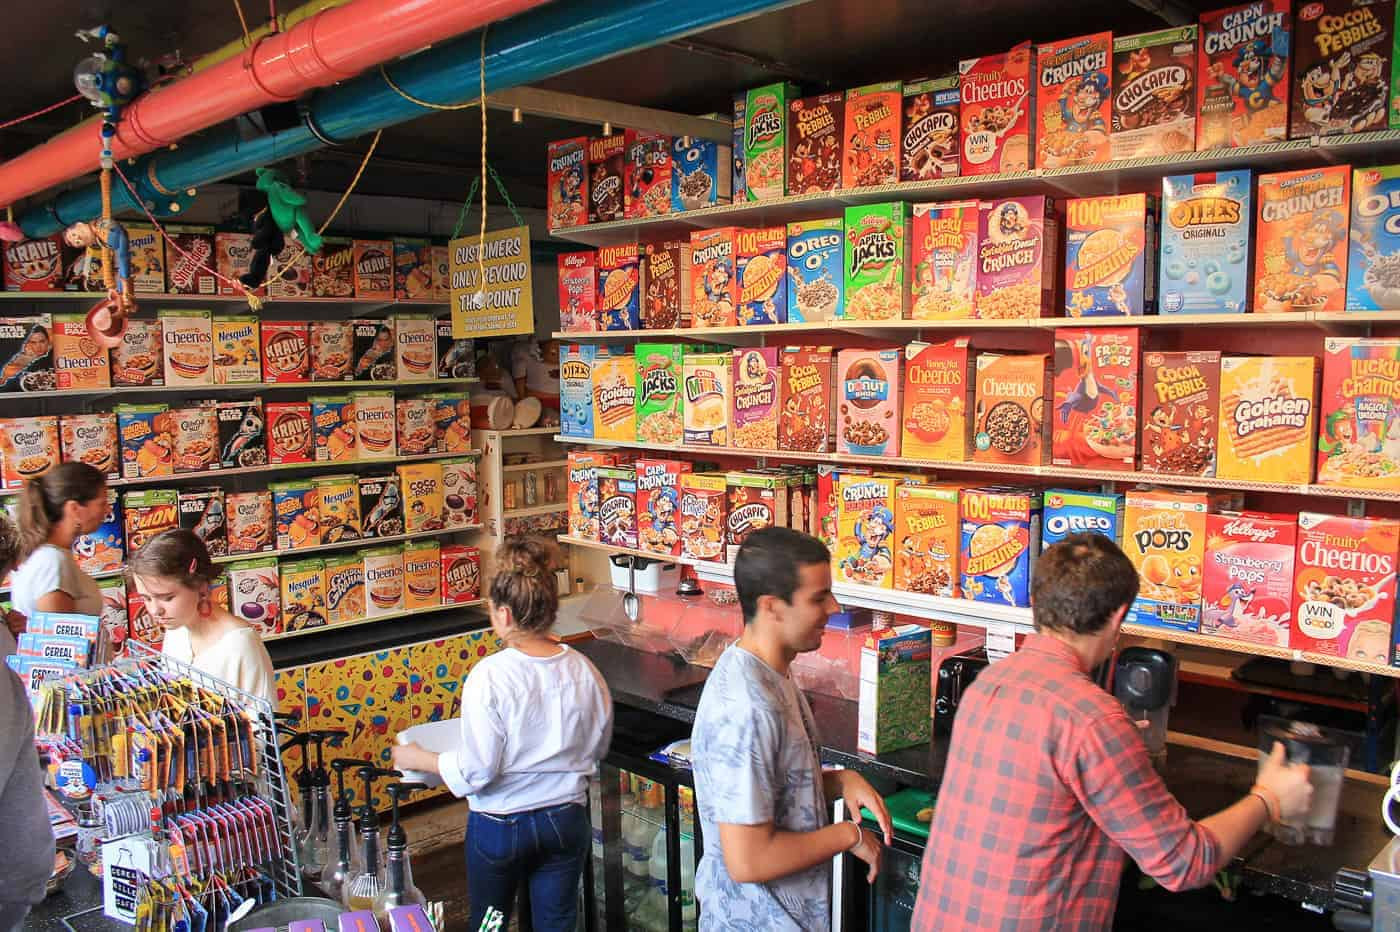 cereal killer cafe is a good Instagram photo spot in London